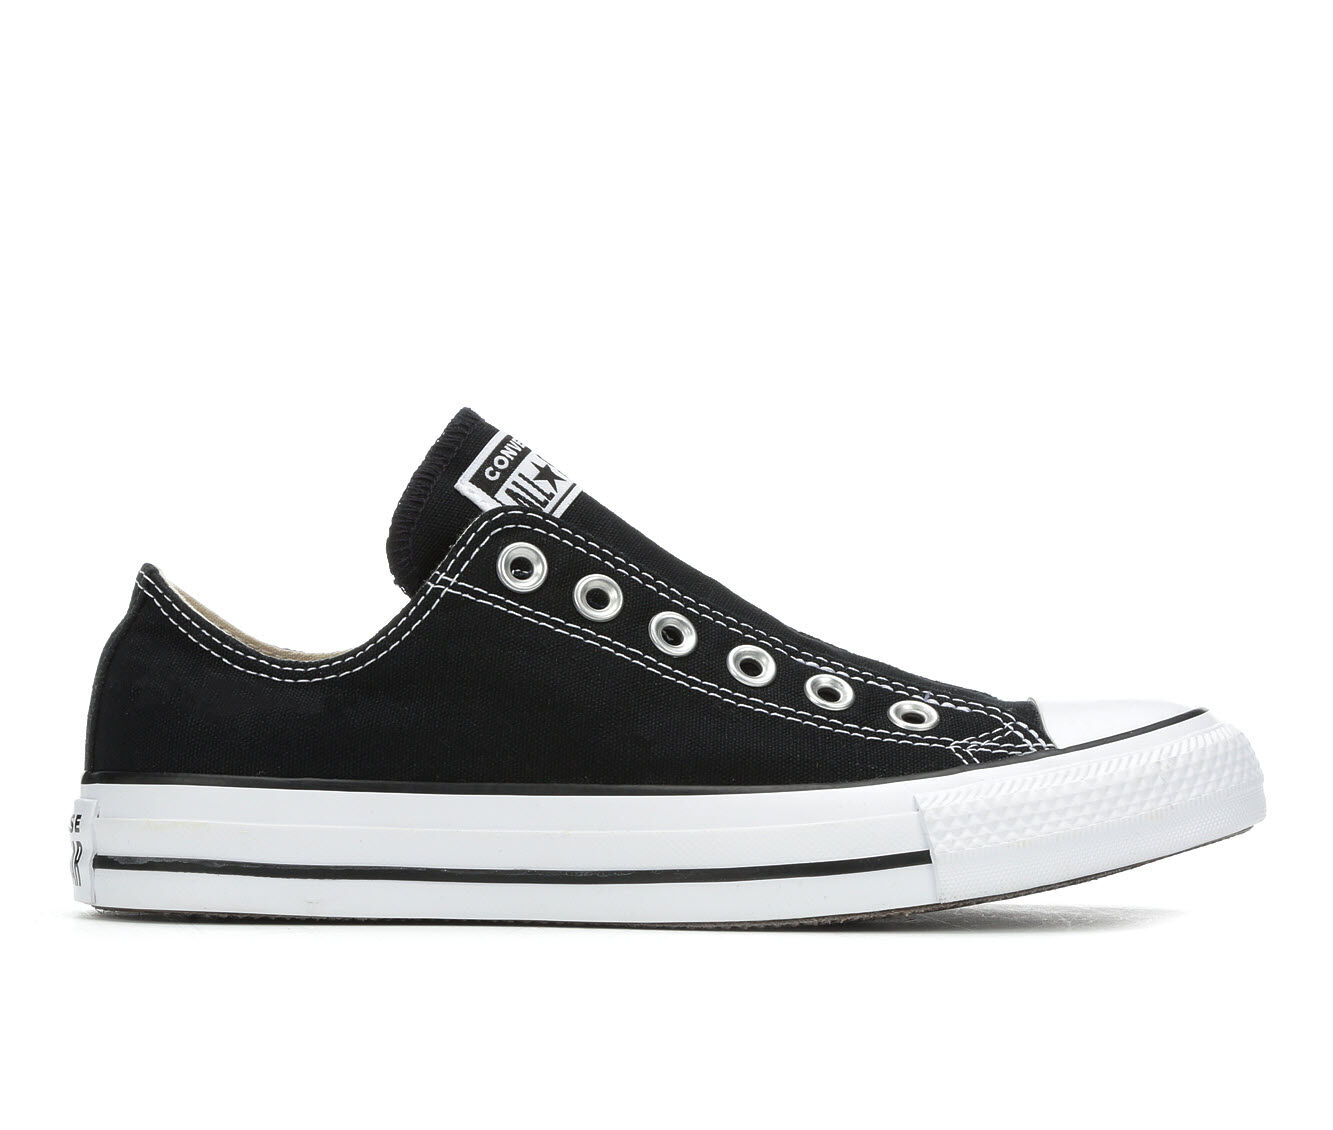 cheapest new arrivals Men's Converse Chuck Taylor All Star Slip Sneakers Blk/Wht/Blk